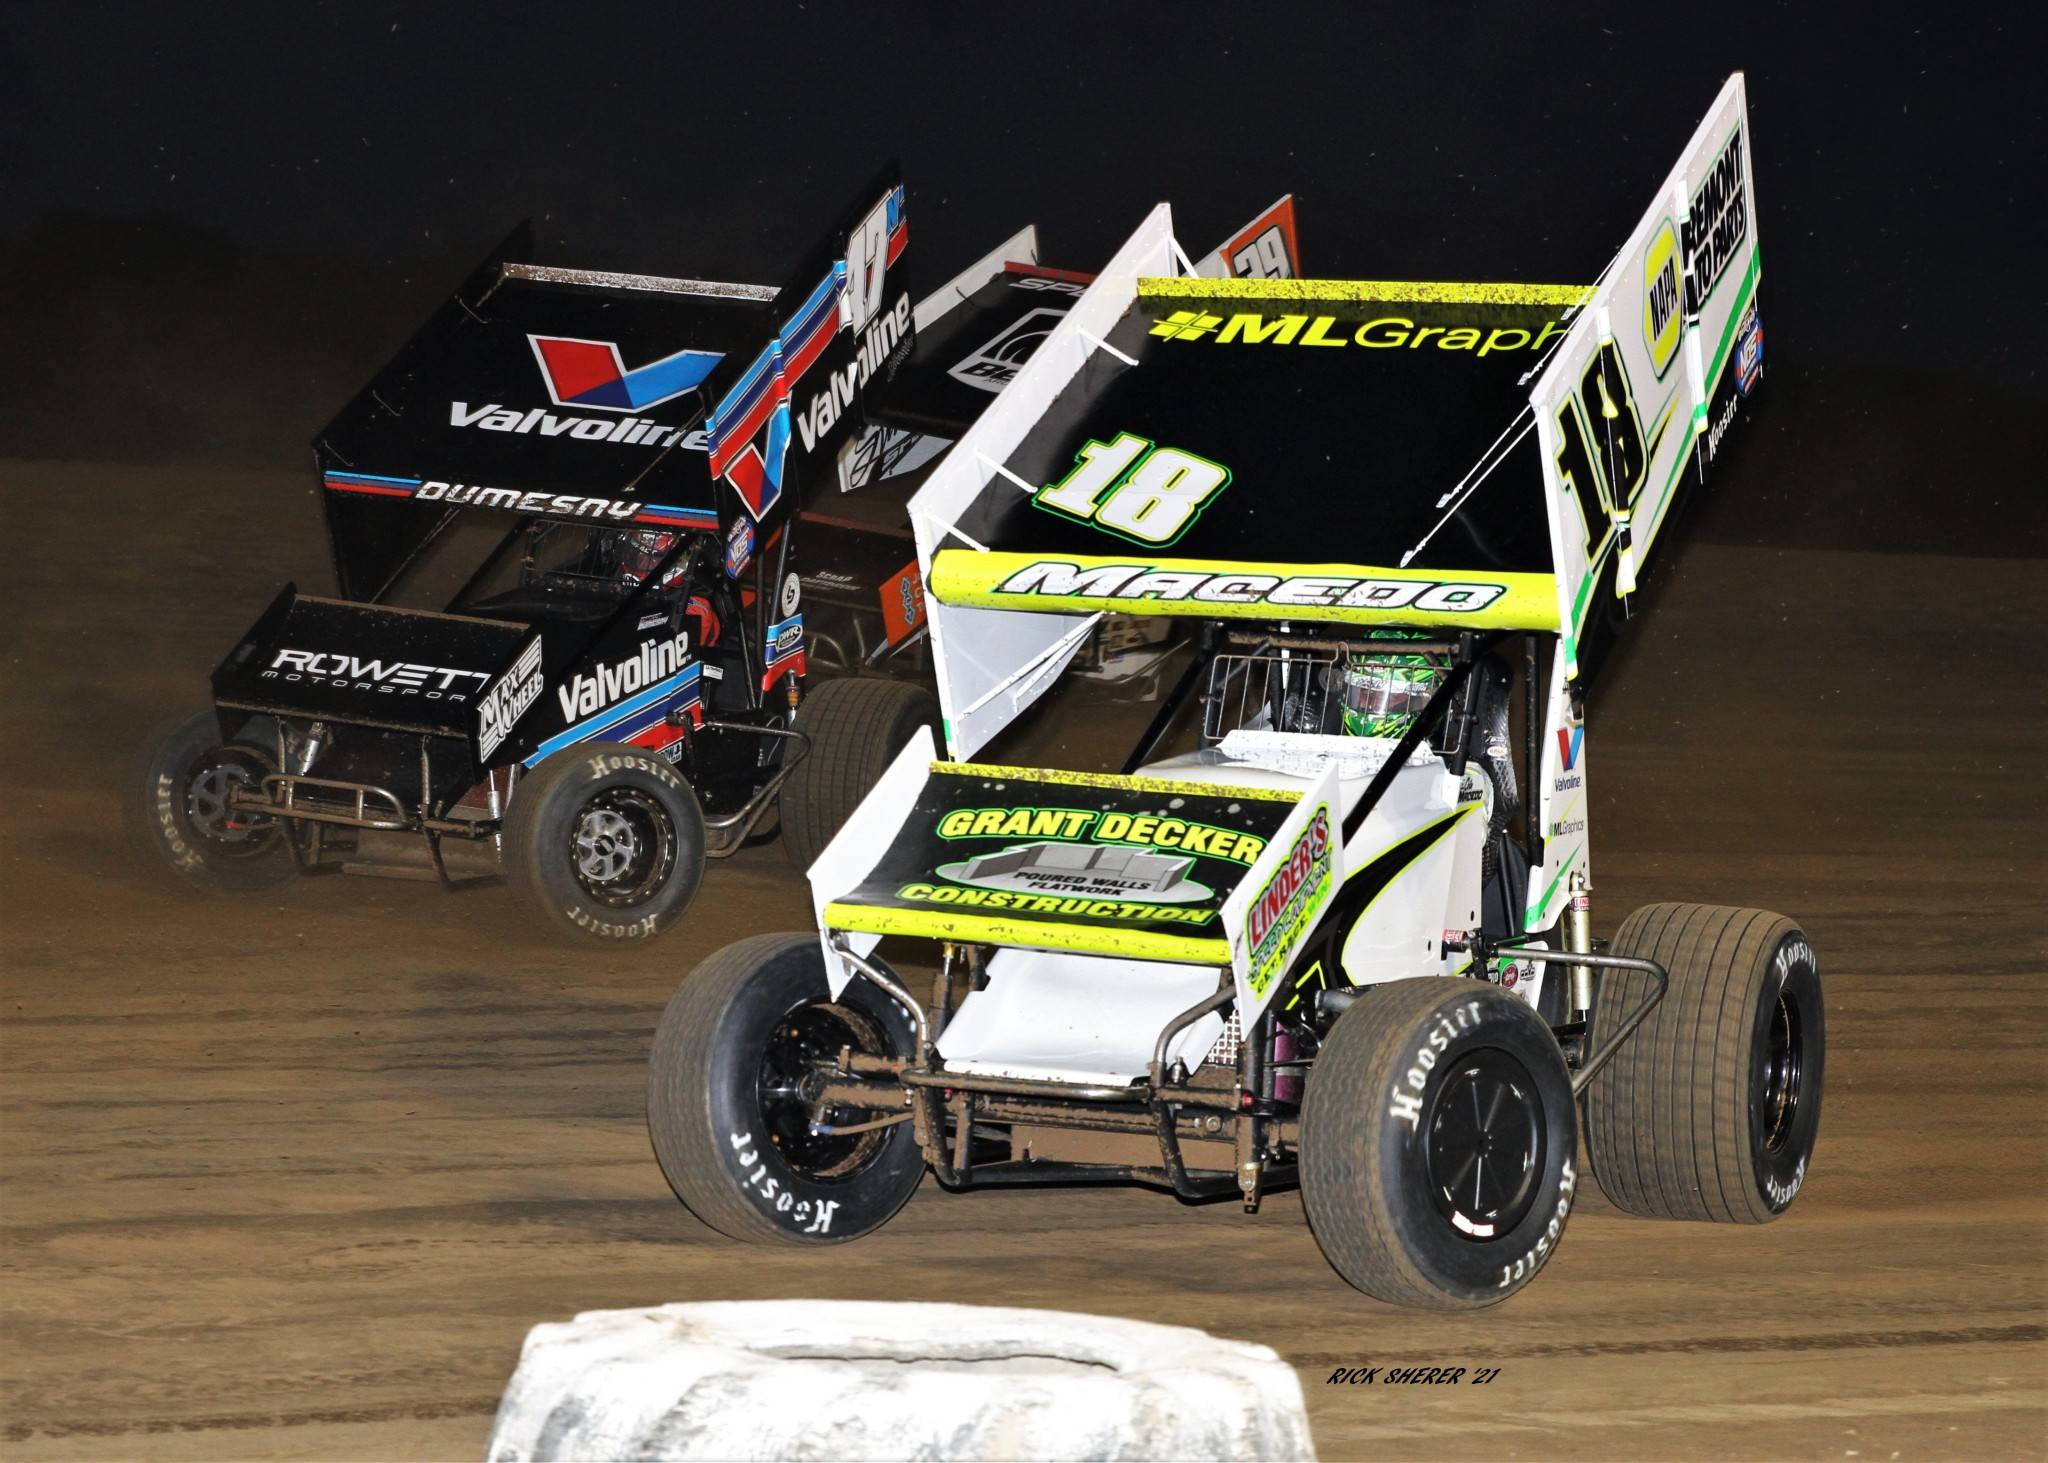 The 18 car owned by Gibsonburg's Ray Brooks and driven by Cole Macedo battles early on with Australian Marcus Dumesny (47) and NASCAR's Christopher Bell (39), but Lebanon, Indiana's Spencer Bayston (11) ran away to win the World of Outlaws Brad Doty Classic at Attica Raceway Park.  (Photo by Rick Sherer)